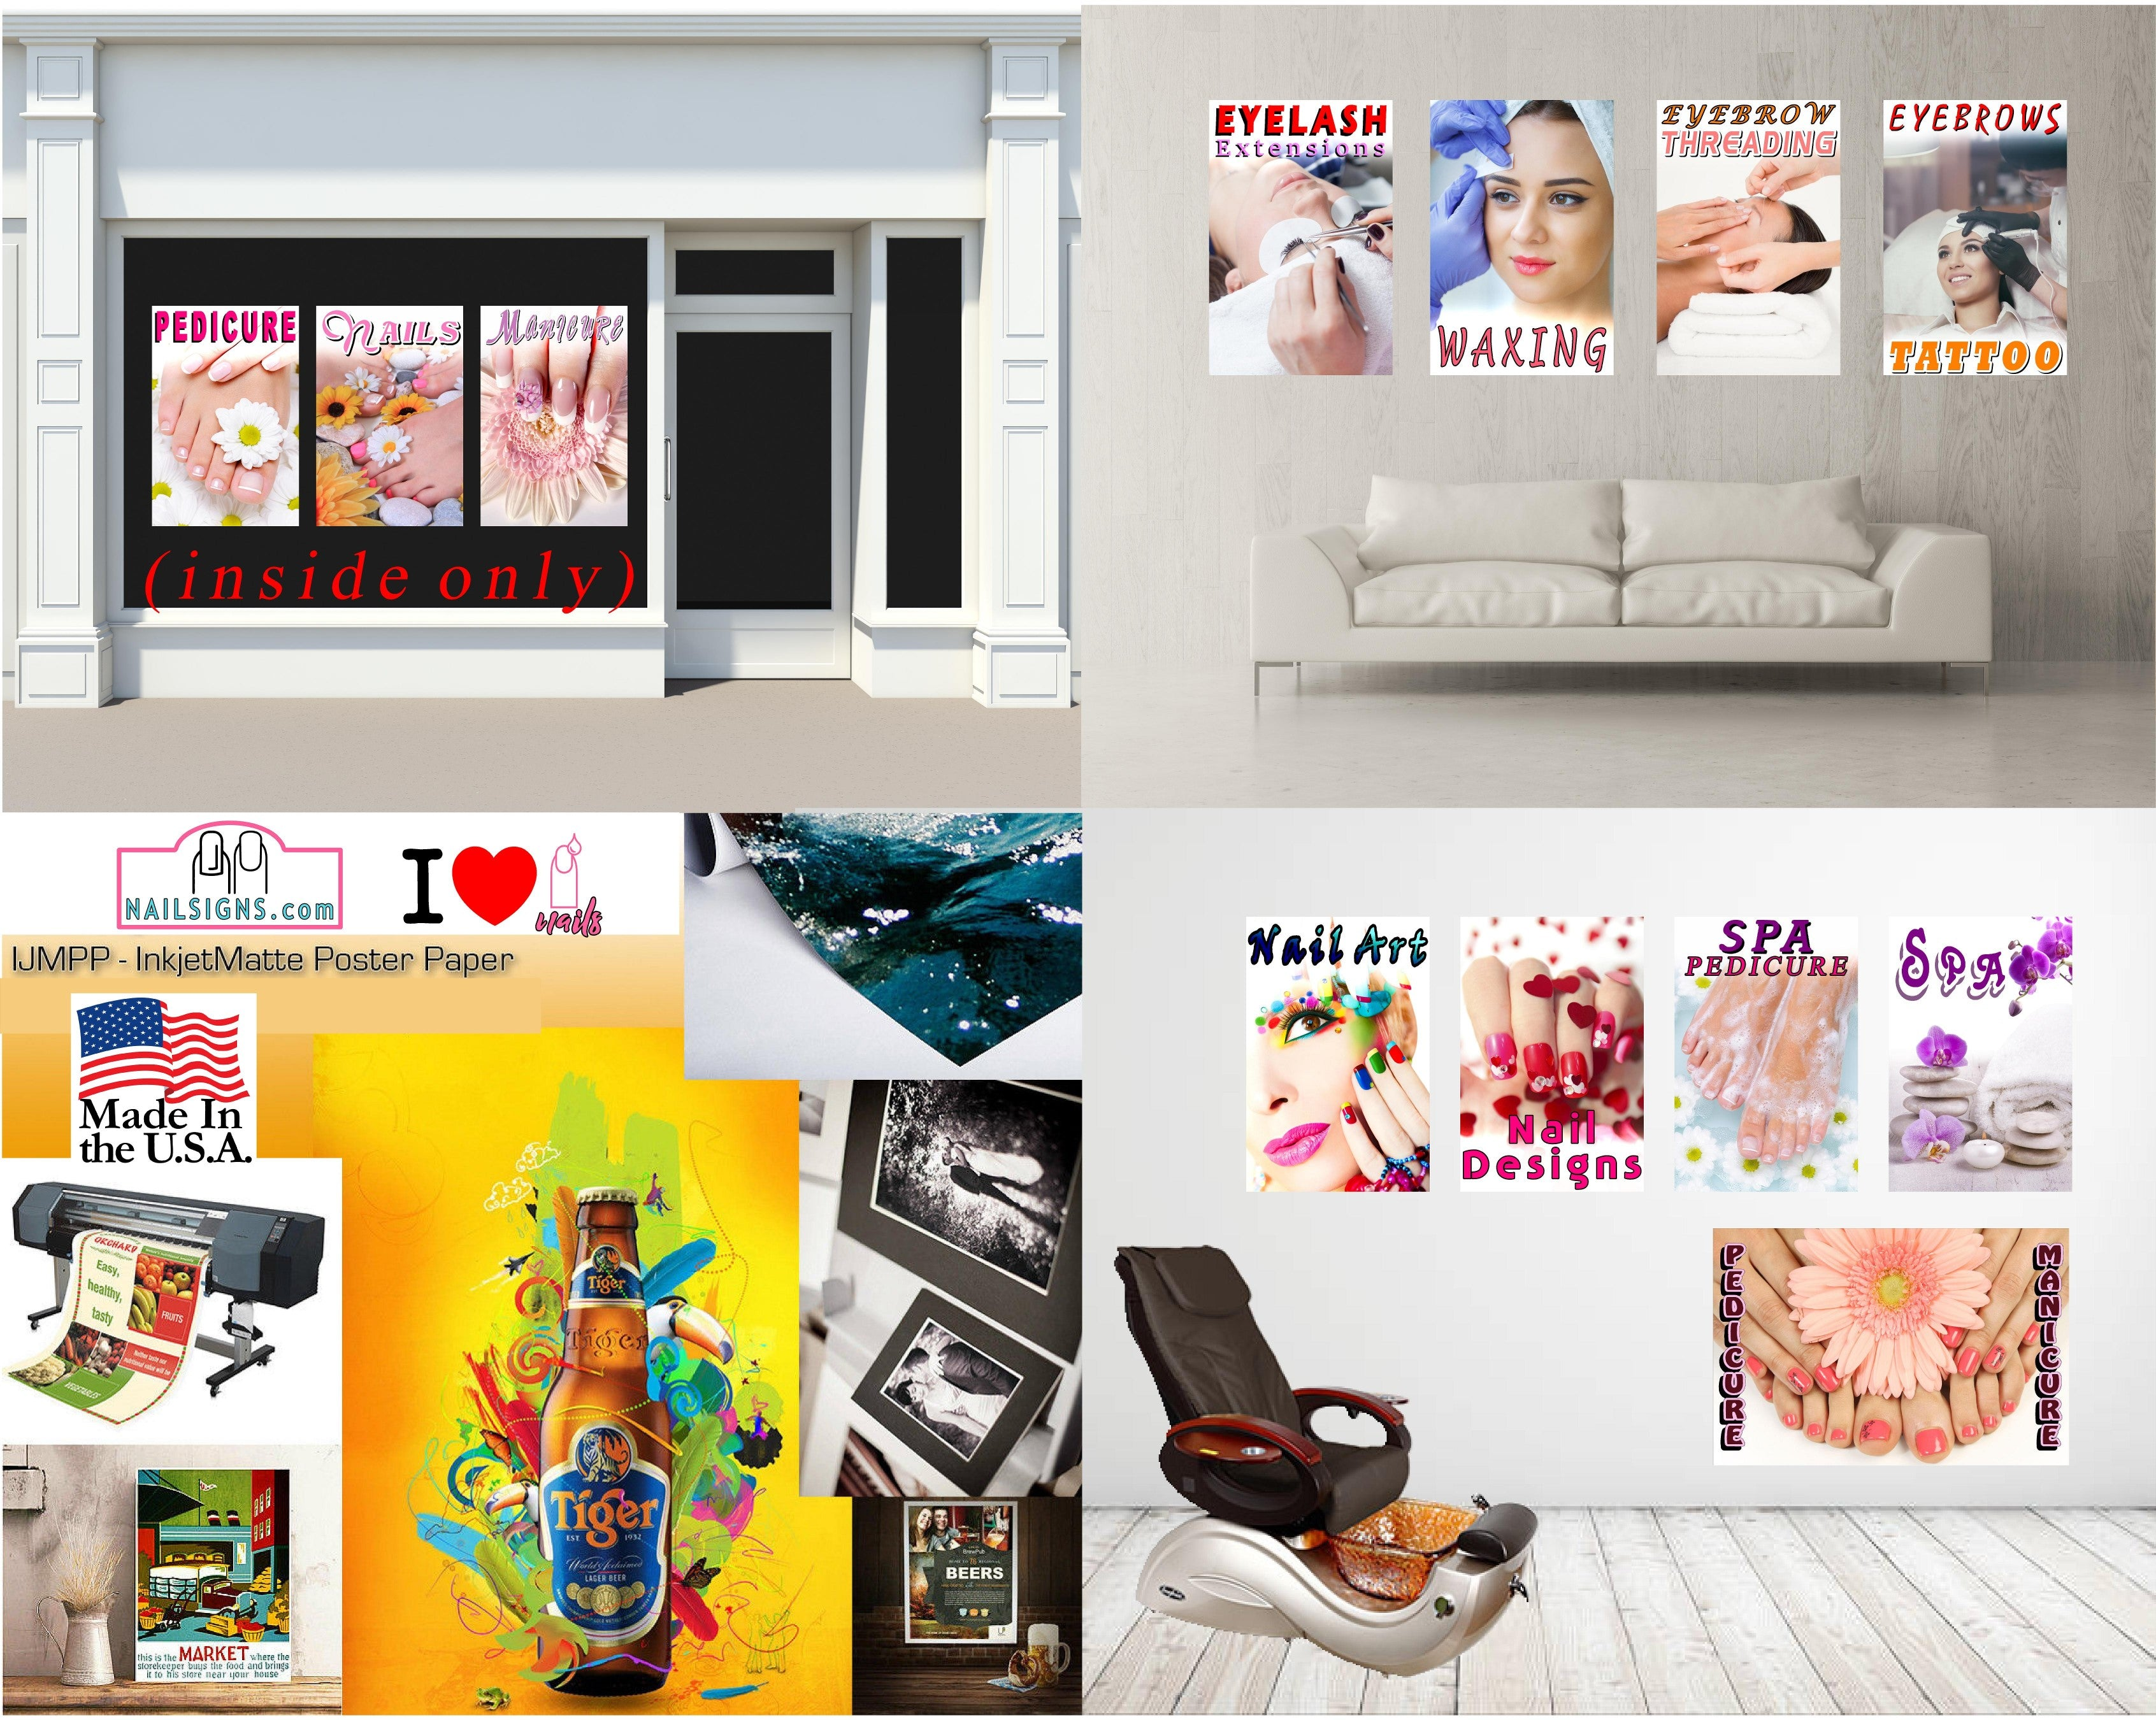 Pedicure & Manicure 10 Photo-Realistic Paper Poster Premium Matte Interior Inside Sign Adverting Marketing Wall Window Non-Laminated Vertical